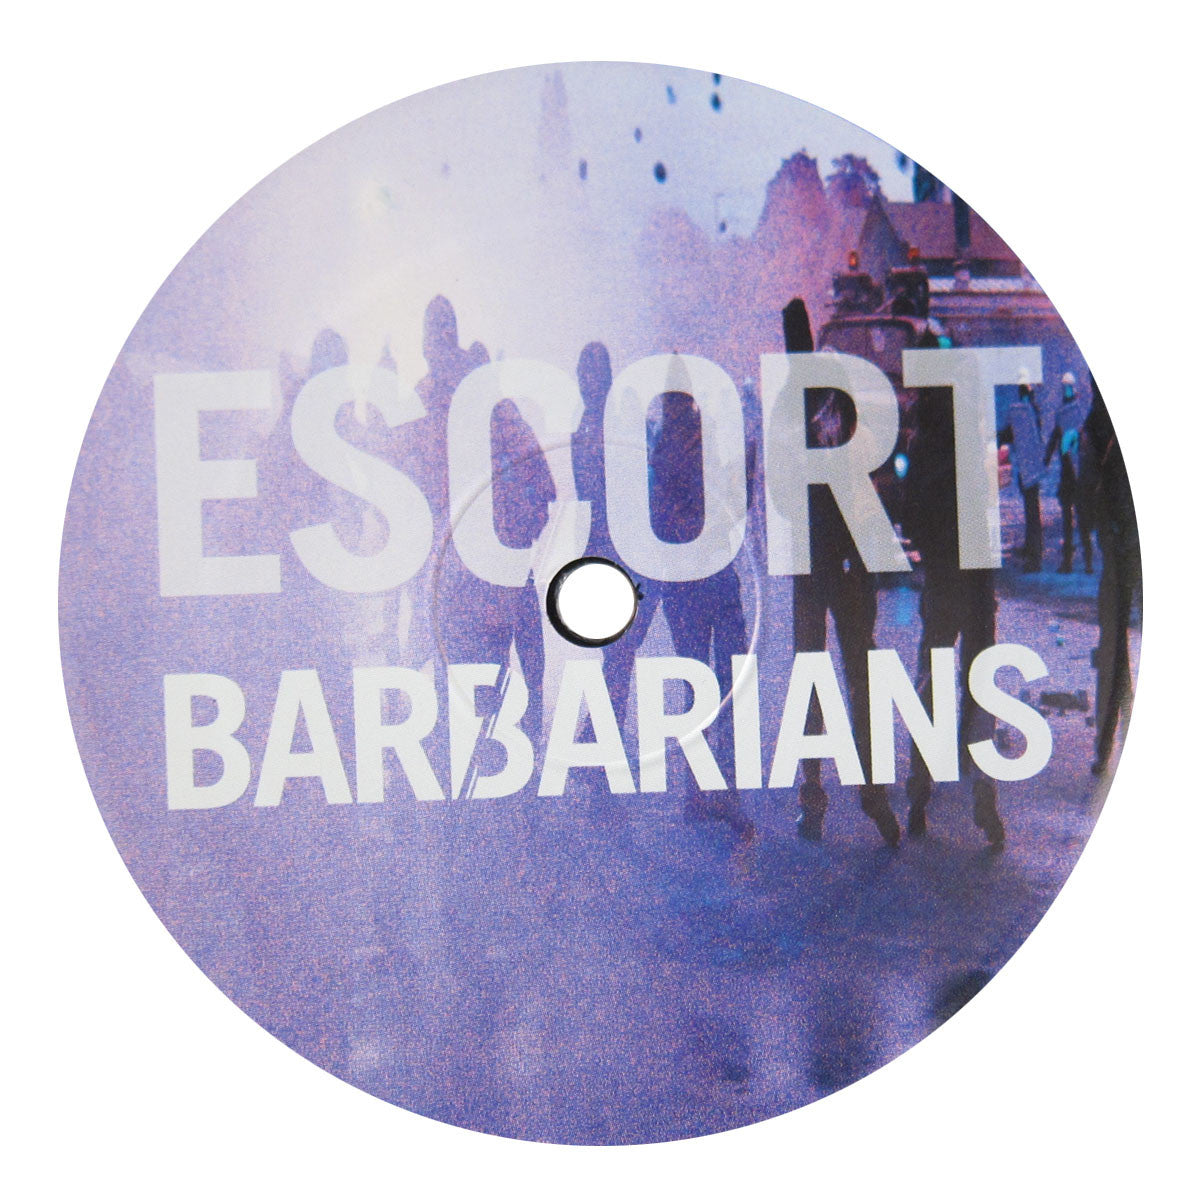 Escort: Barbarians (Tiger & Woods, Jkriv) 12""